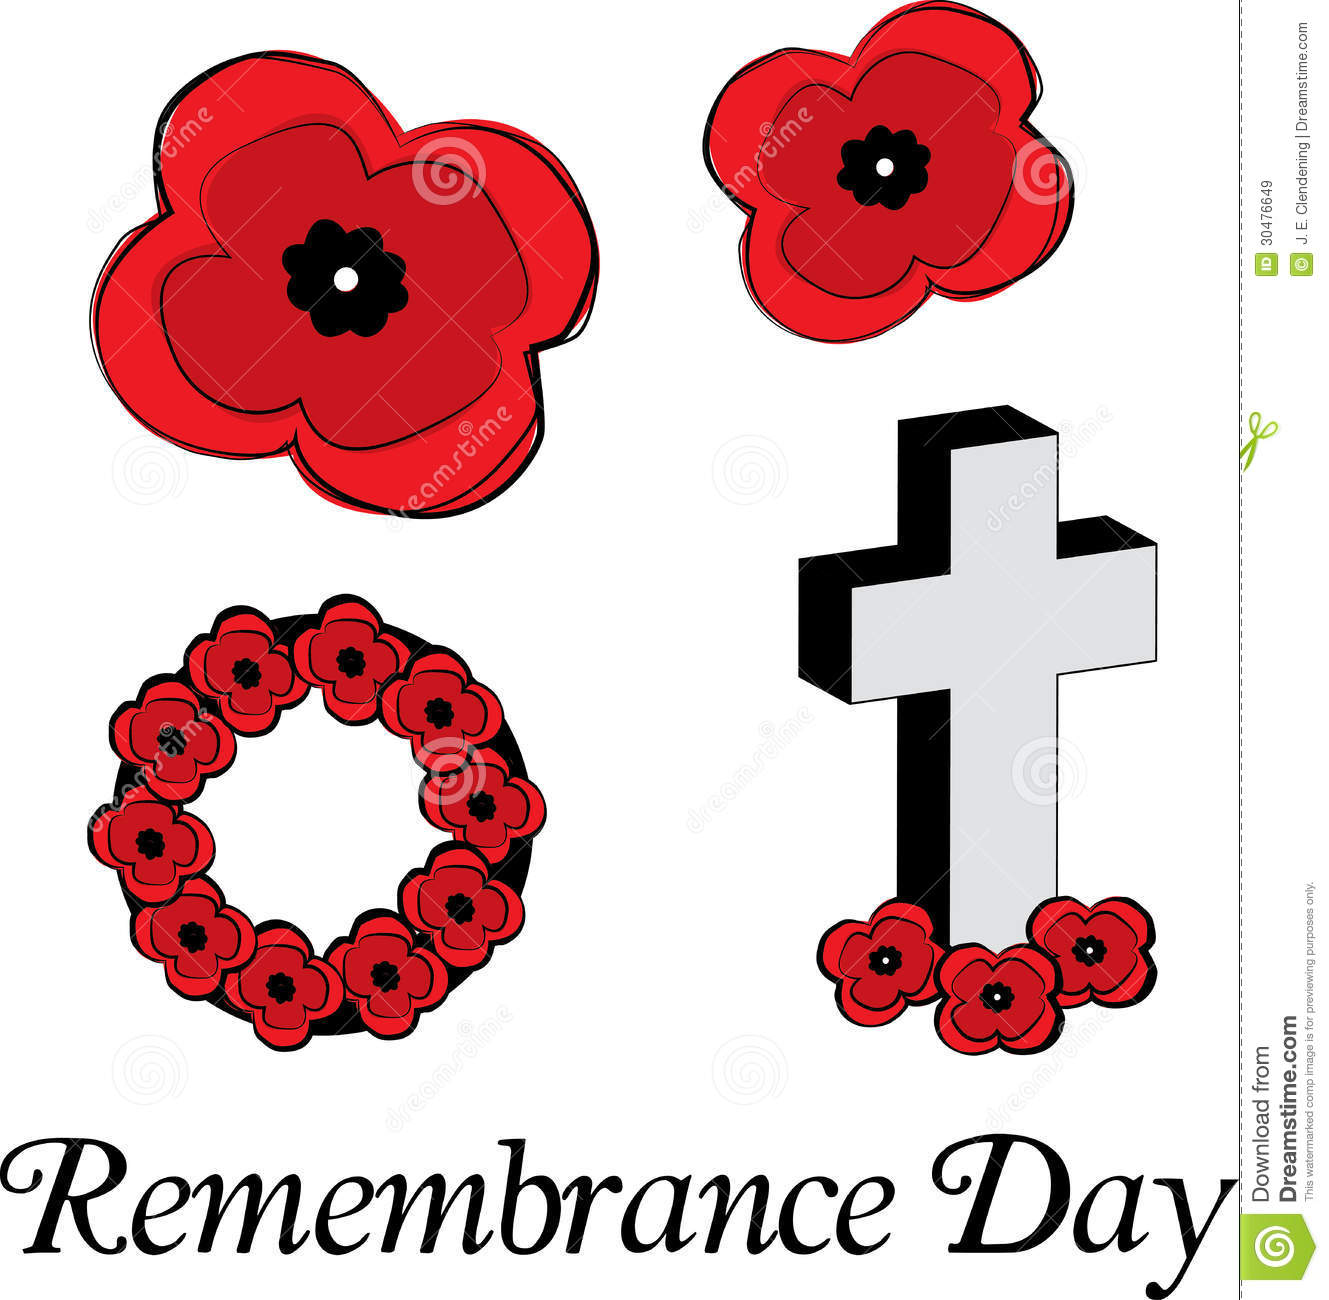 Remembrance Day Poppies Royalty Free Stock Images